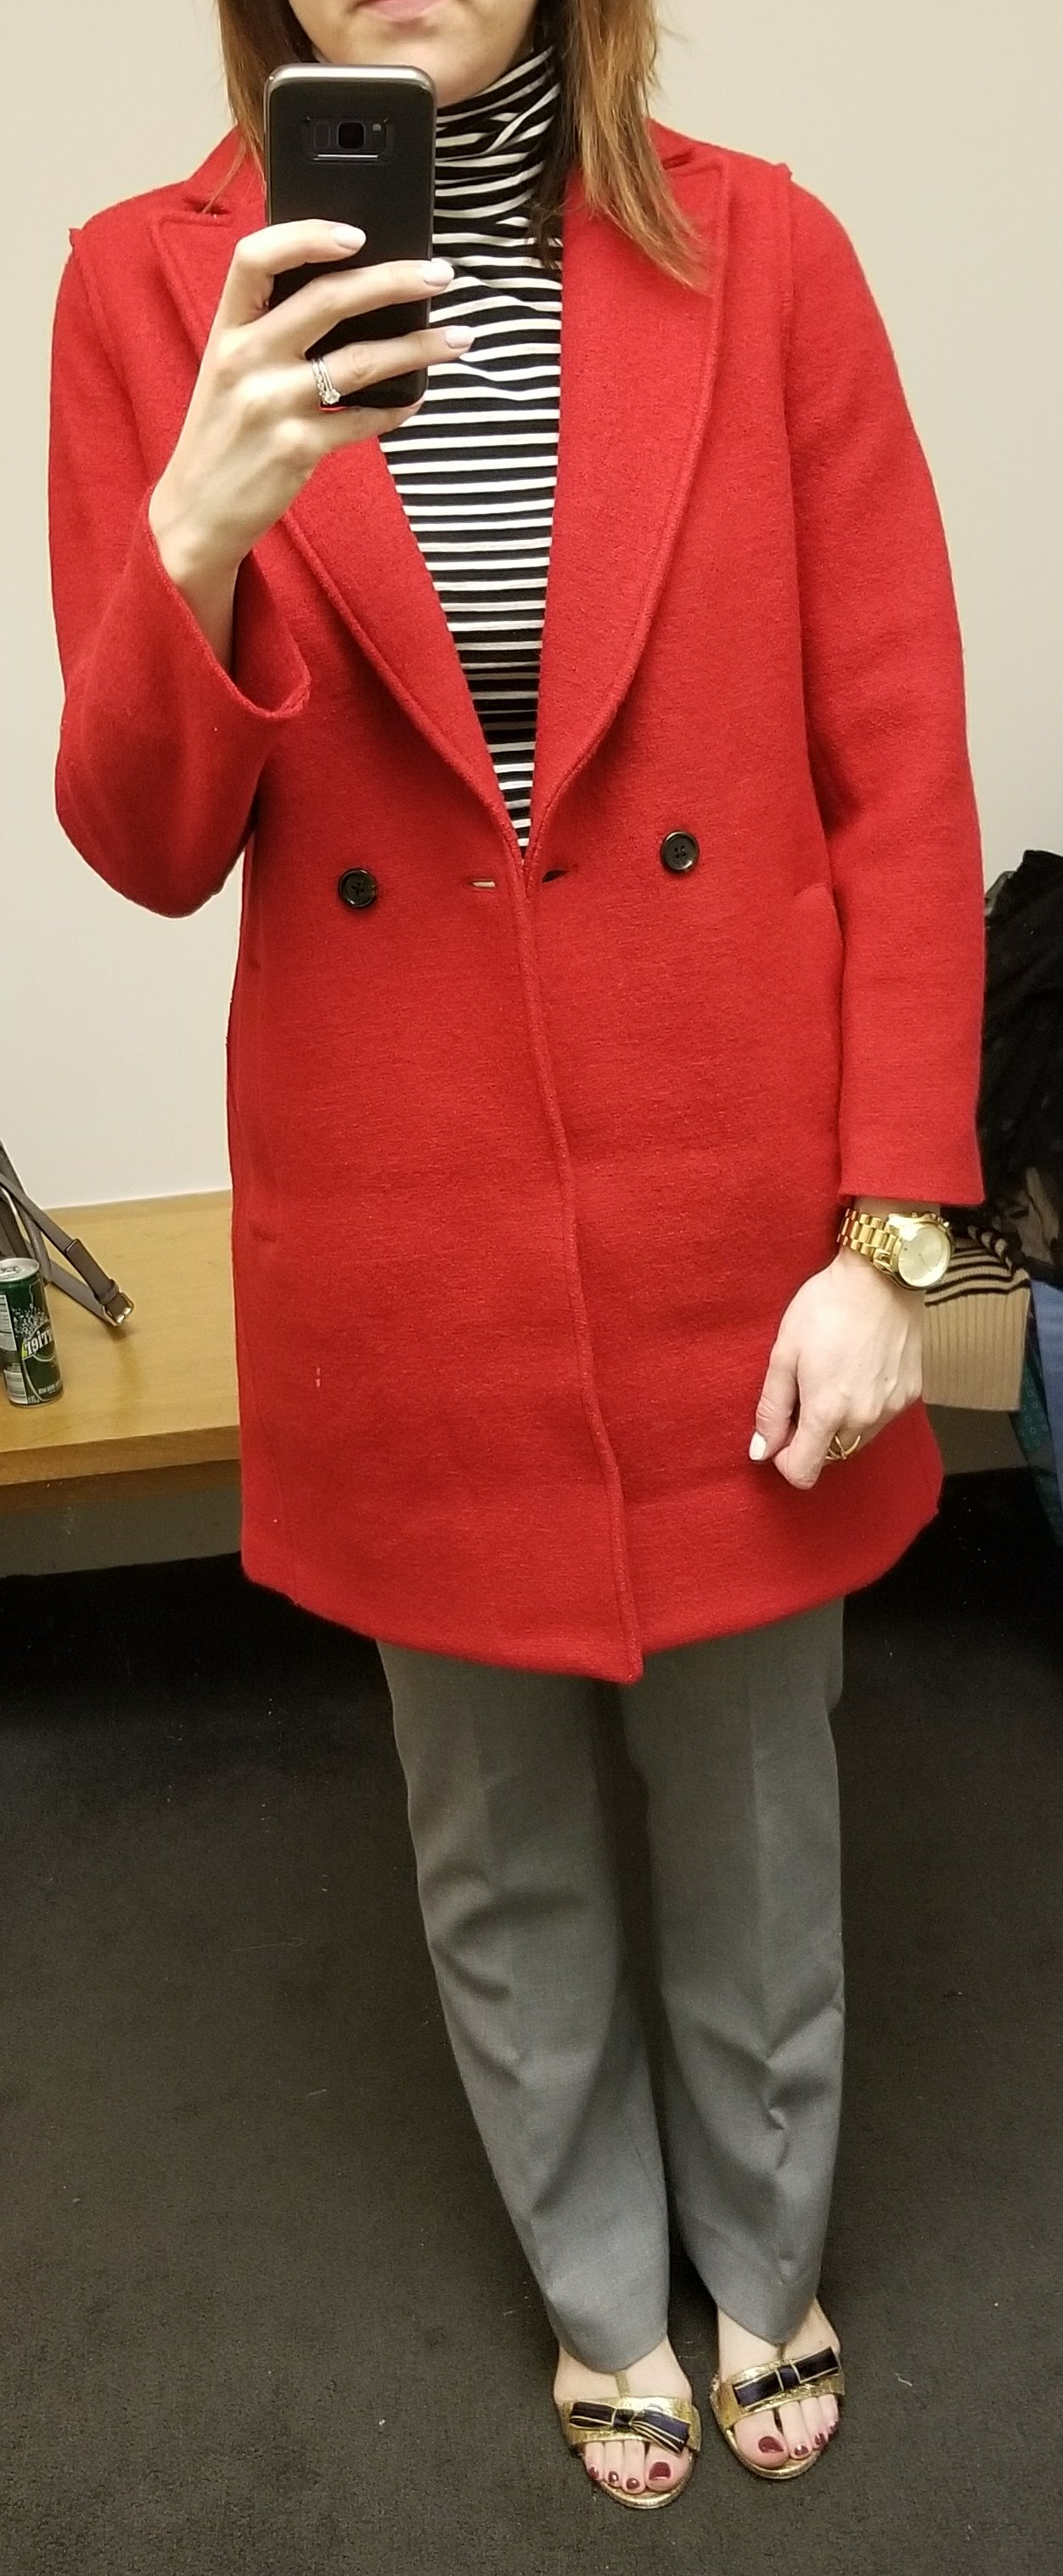 9616c44afd8 I can take or leave boiled wool so this coat was just ok for me. I have an  old boiled wool sweater coat from Banana Republic that I ve had for years  and ...